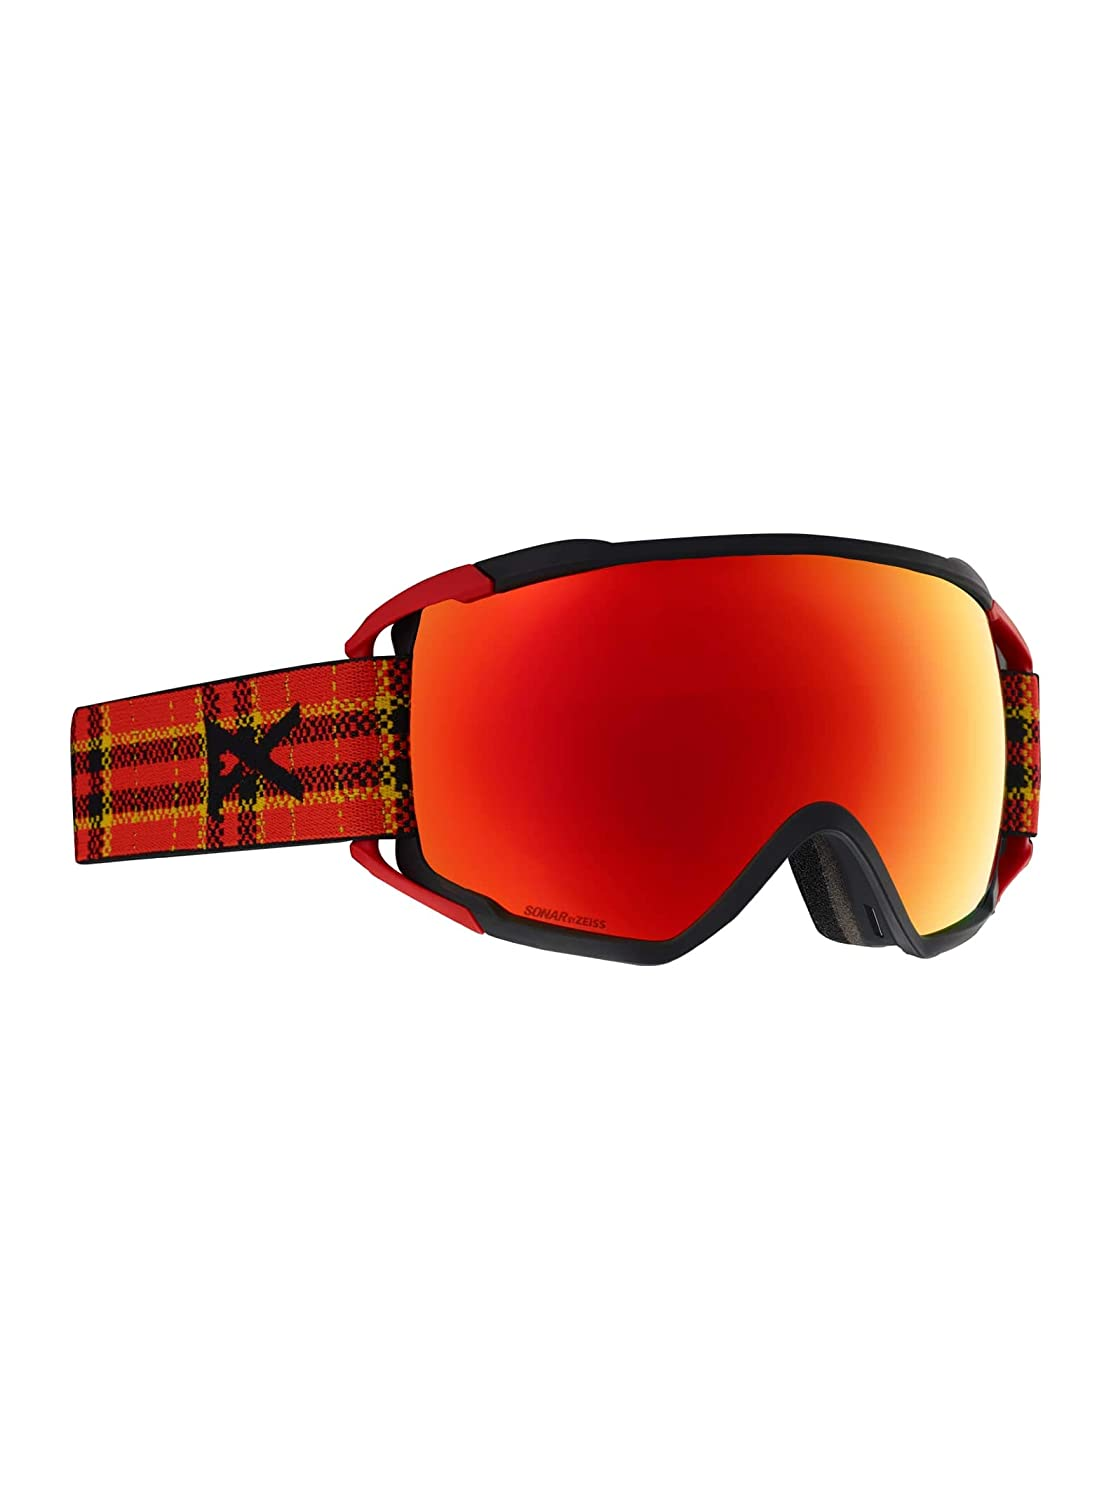 Flannel Frame Sonar Red Lens Anon Mens Circuit Goggle with MFI Mask